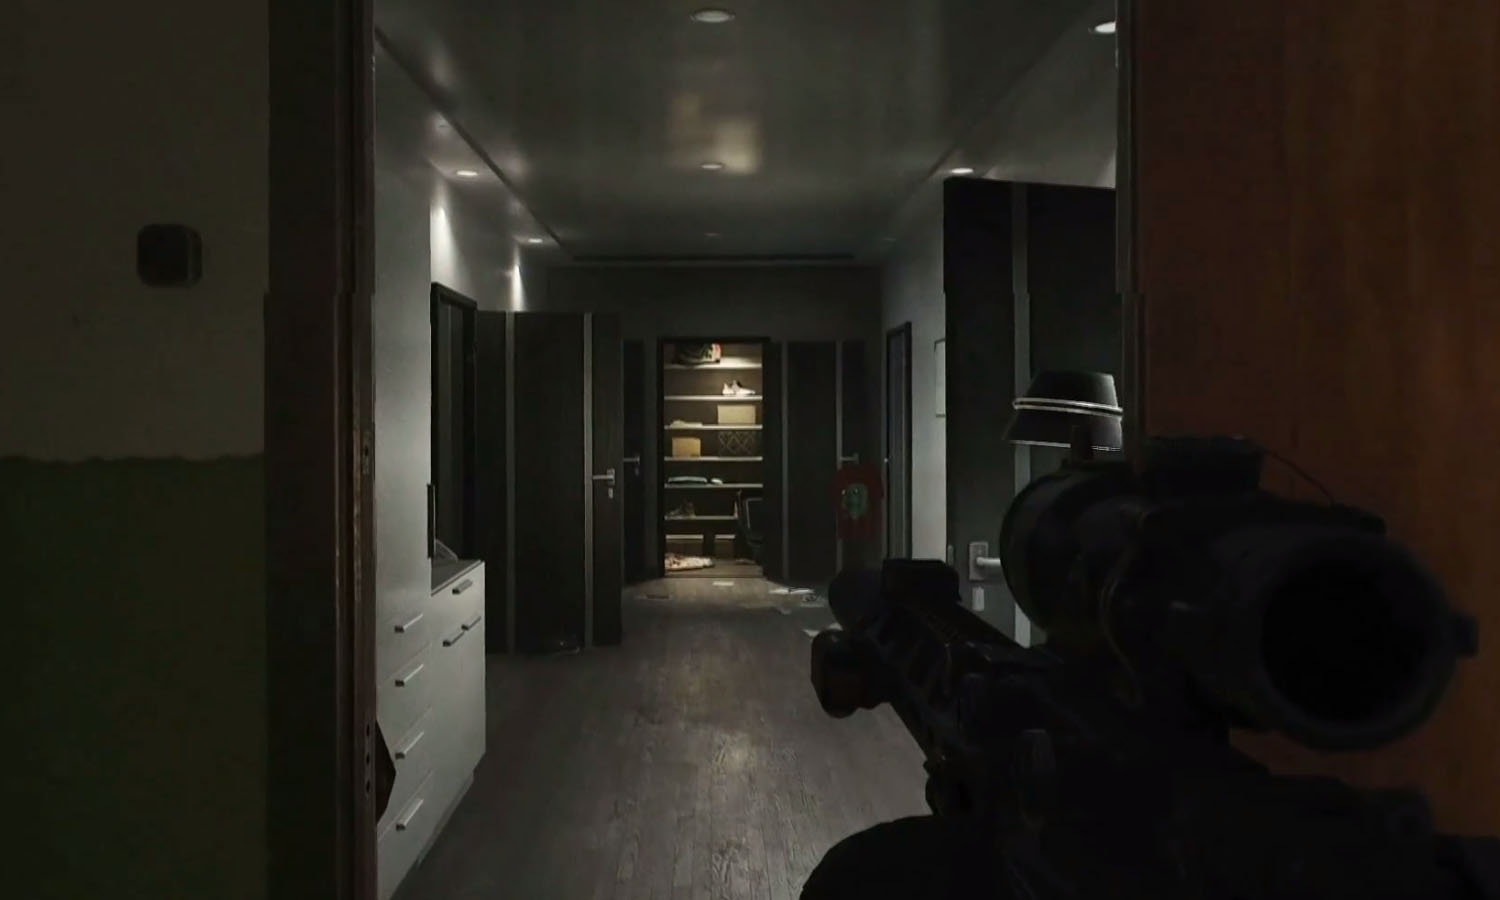 Escape from Tarkov has been in beta for multiple years, but it's still getting patches and maps screenshot